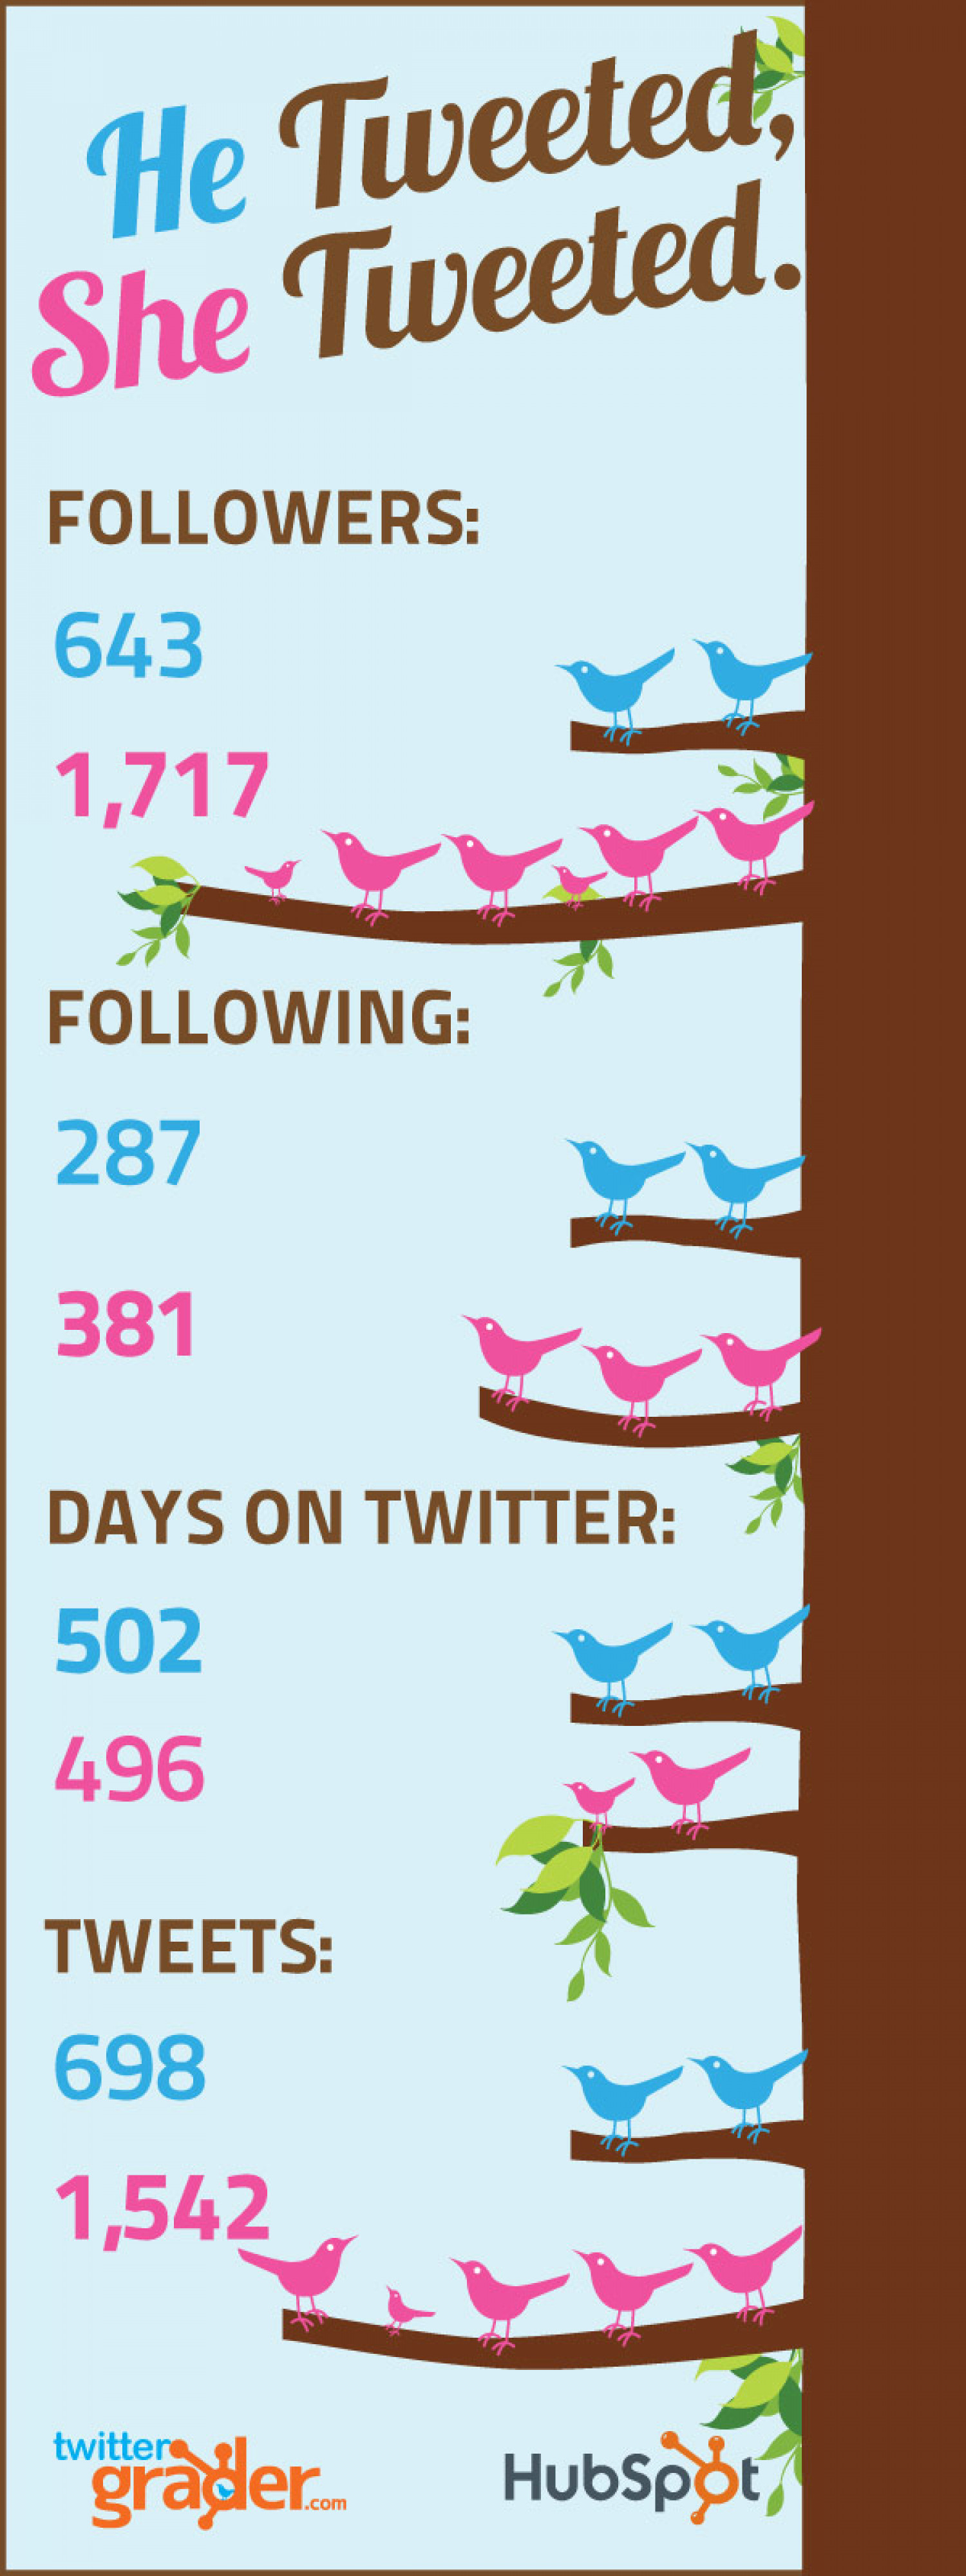 He Tweeted, She Tweeted. Infographic